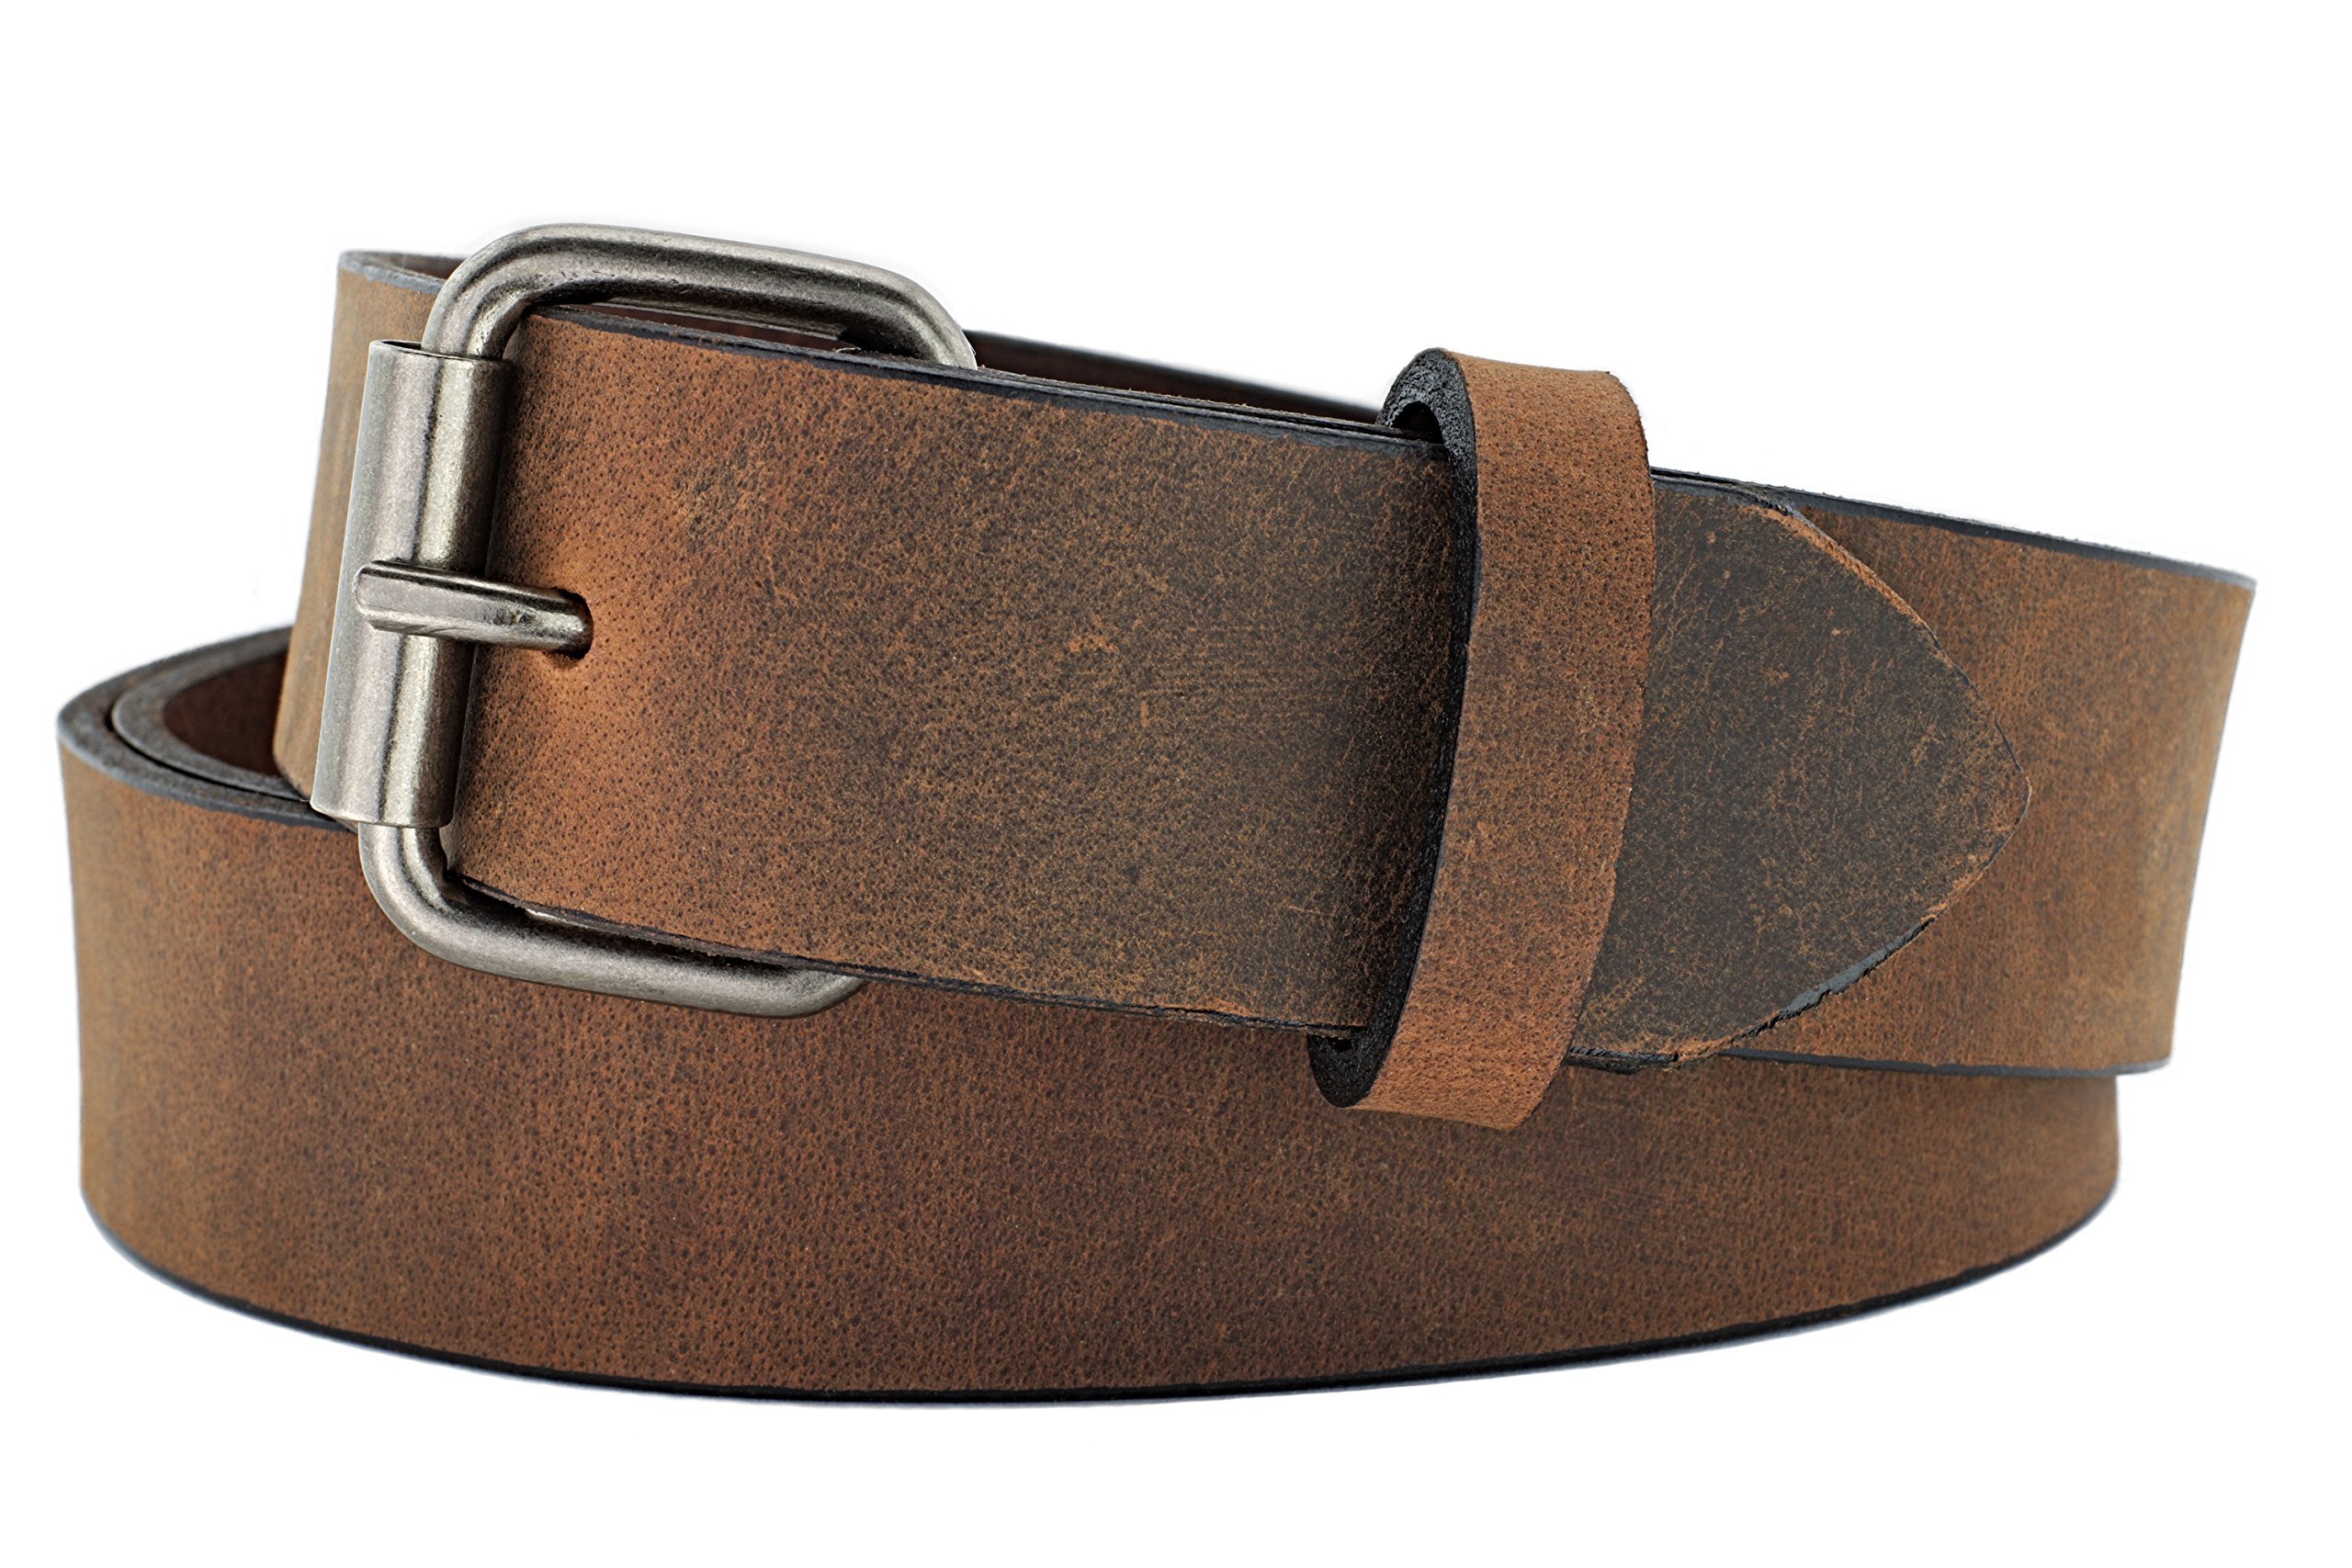 Naleeni Womens Dark Brown Leather Belt Soft with Buckle Options. Made in USA 1.5 Inch Wide 45RAN